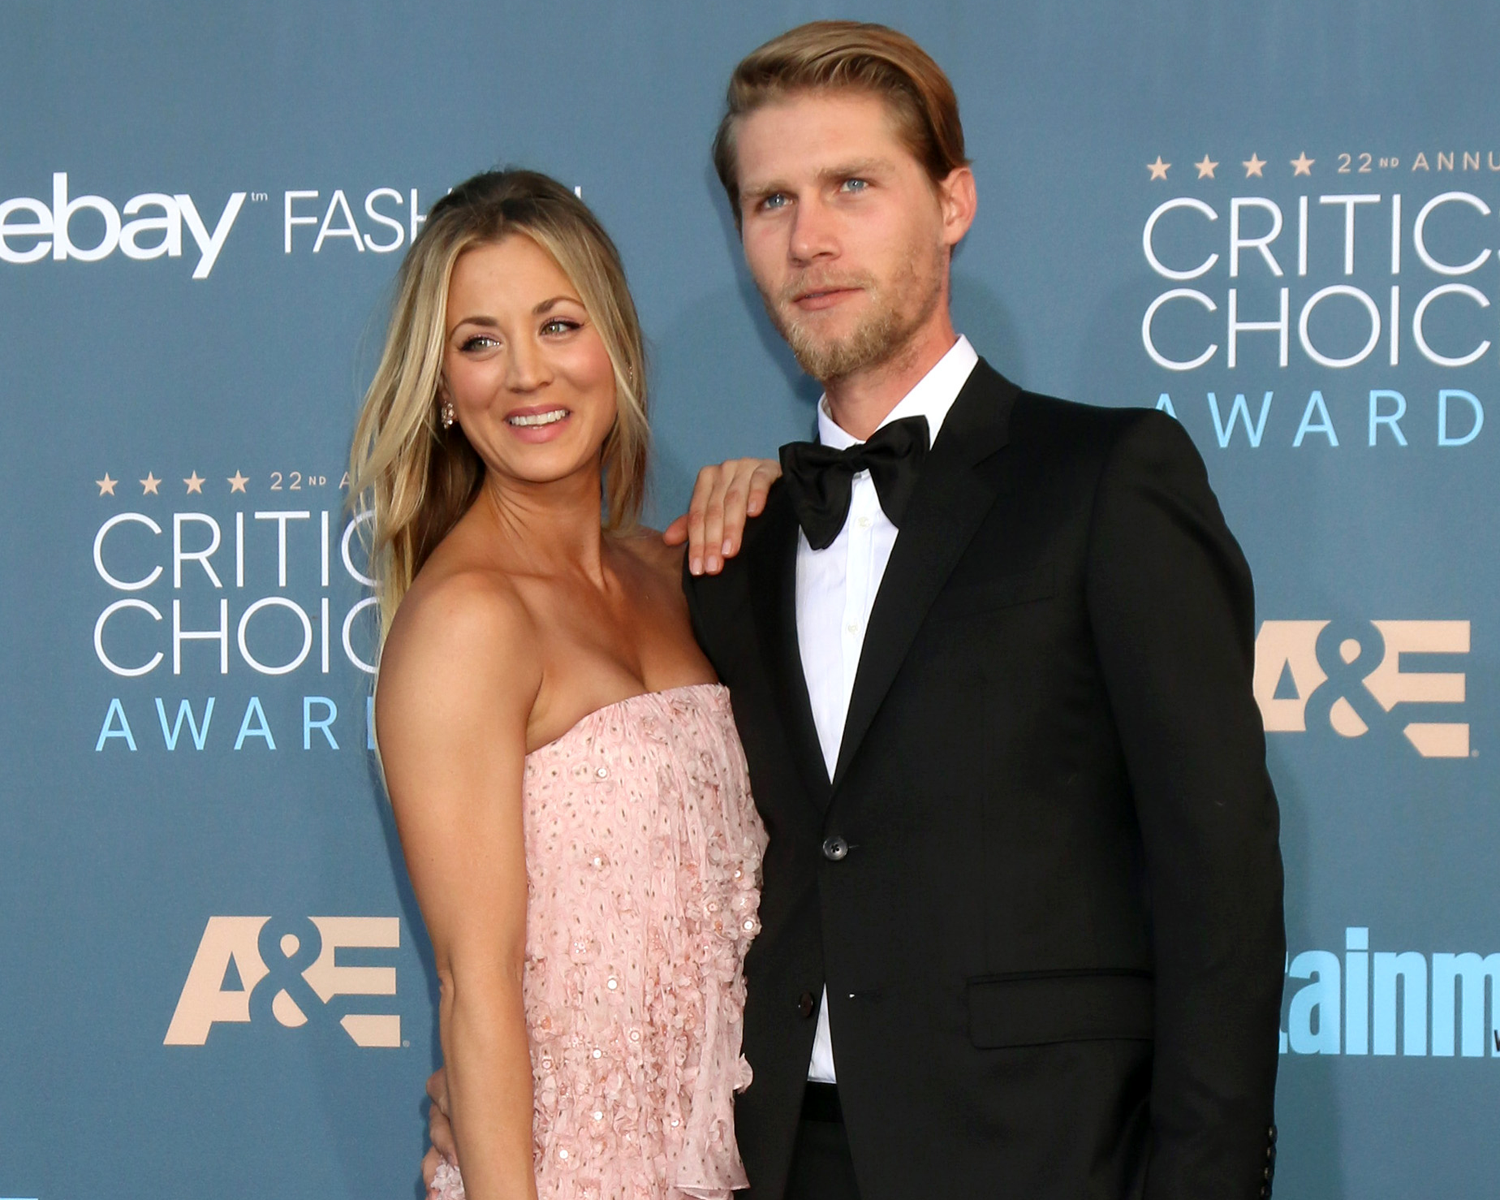 Kaley Cuoco is getting married